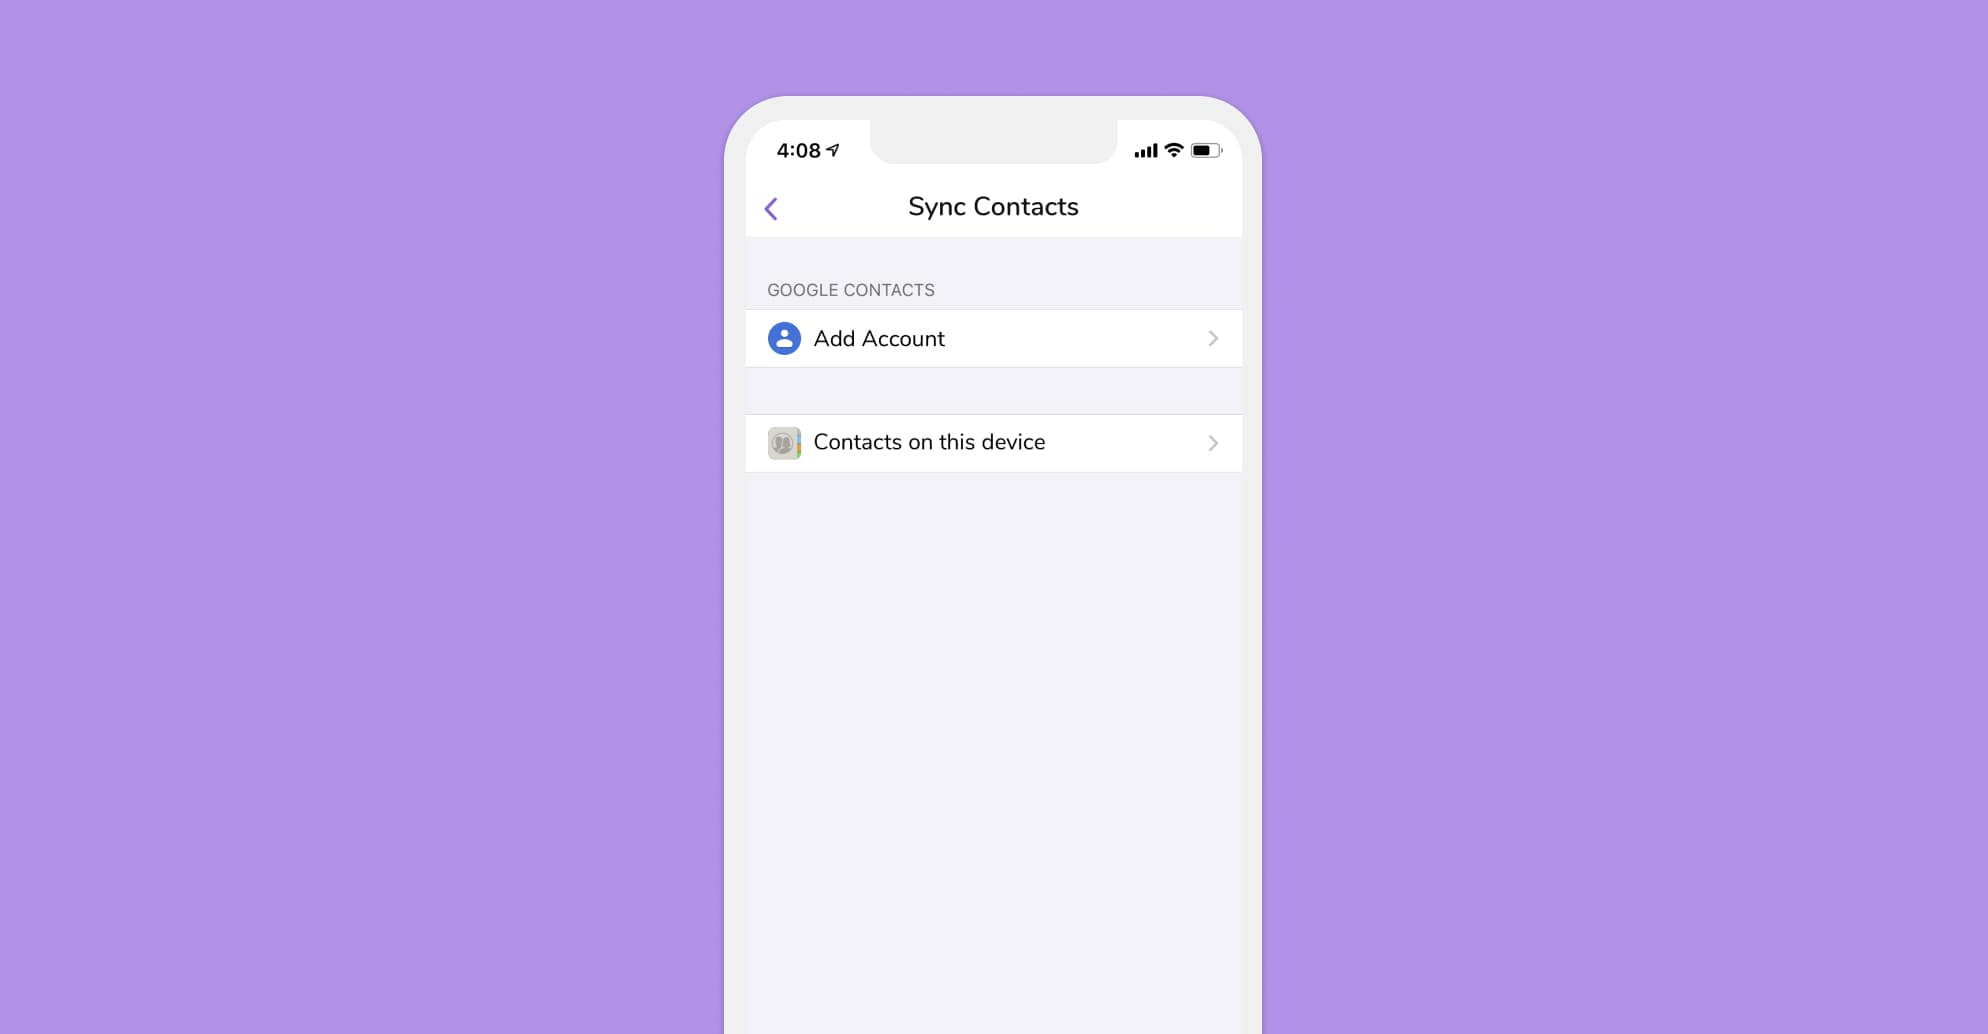 In your HiHello Settings you can add a Google account to sync your contacts with.